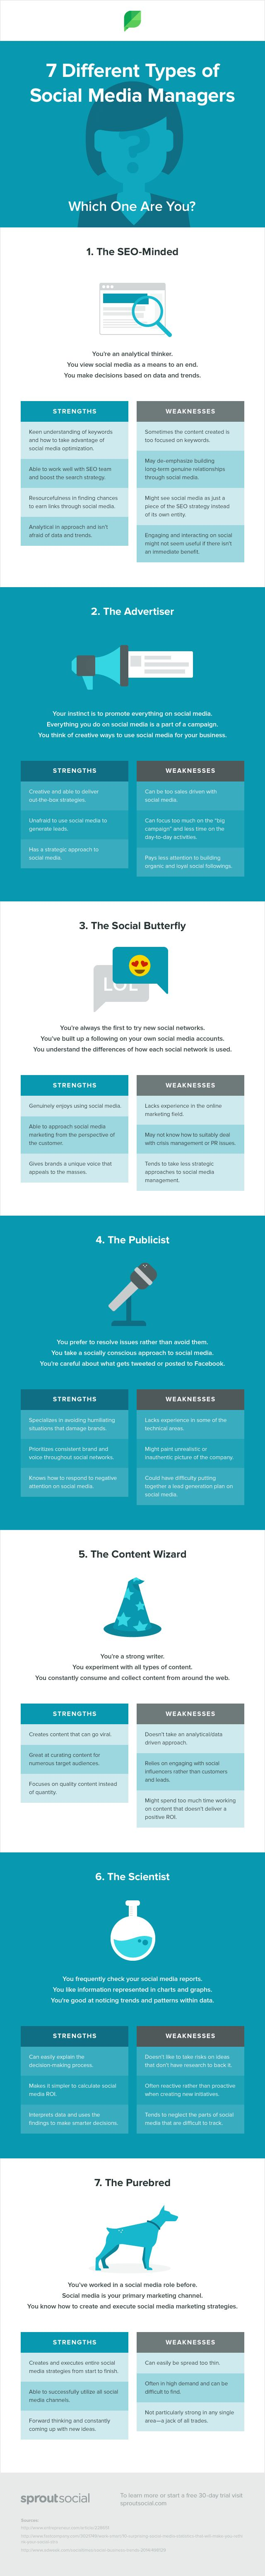 The 7 Different Types of Social Media Managers: Which One Are You? [Infographic] | Social Media Today